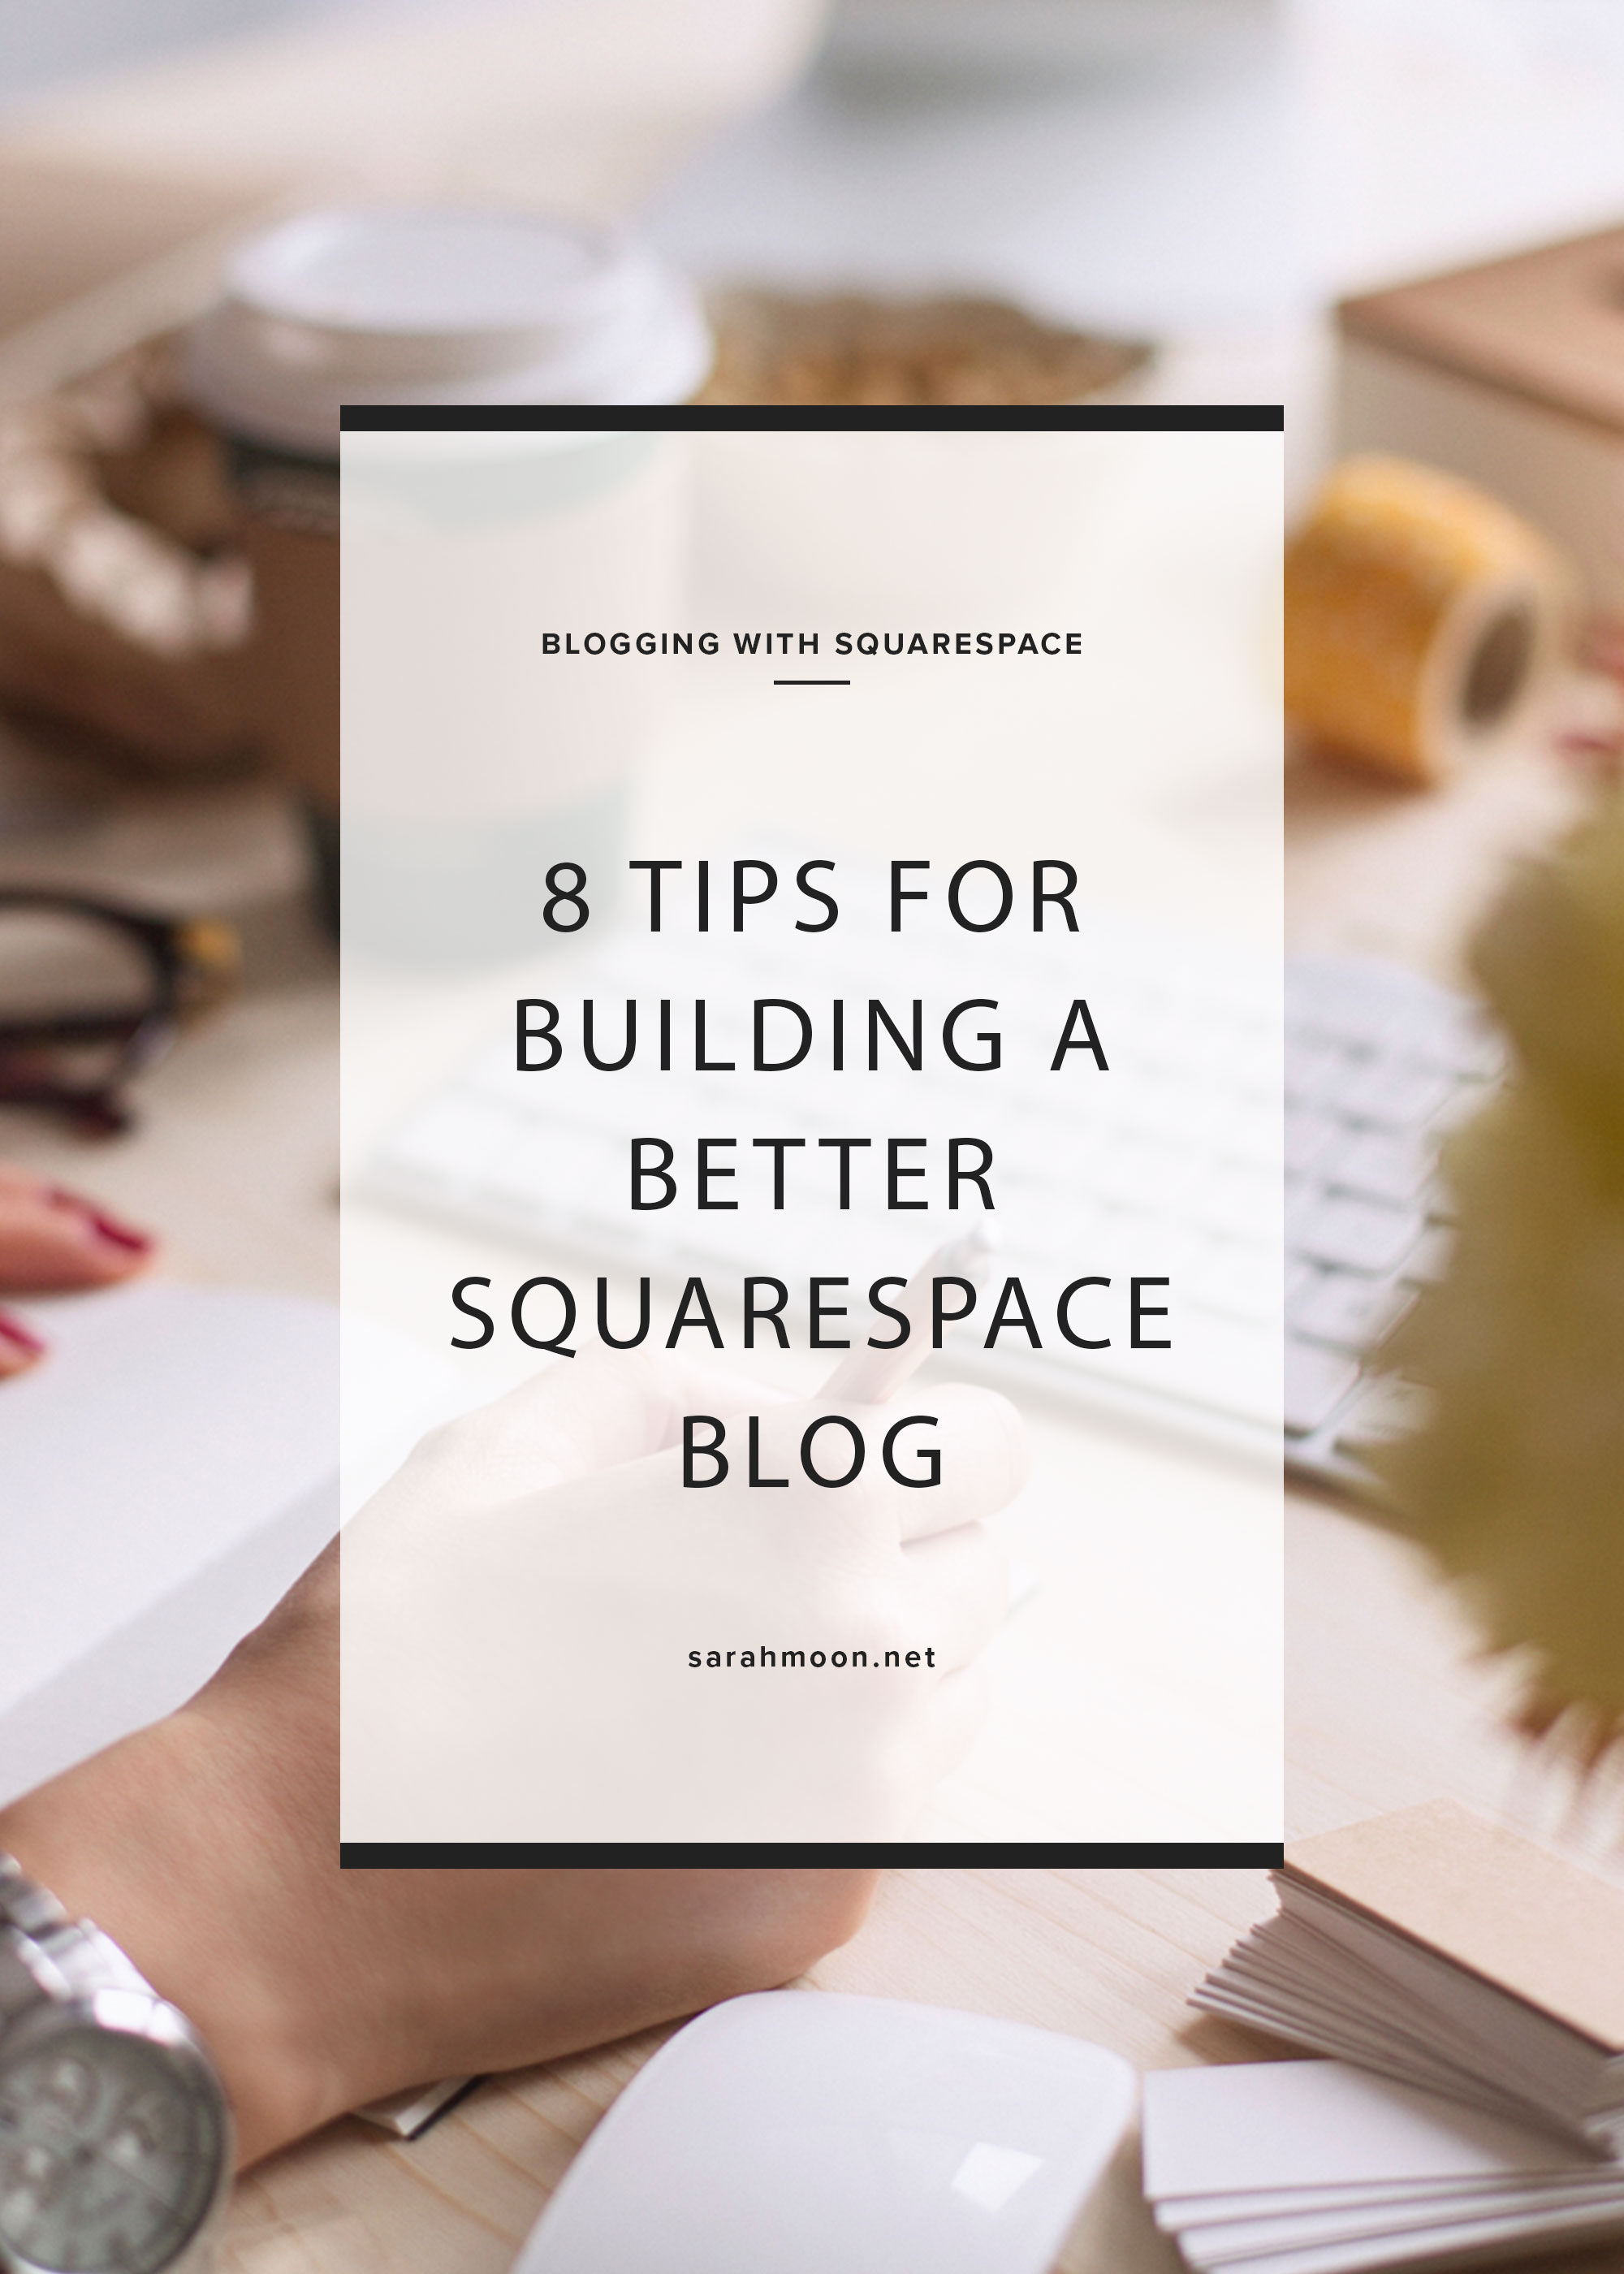 8 Tips for Building a Better Squarespace Blog - by Sarah Moon, Squarespace Specialist